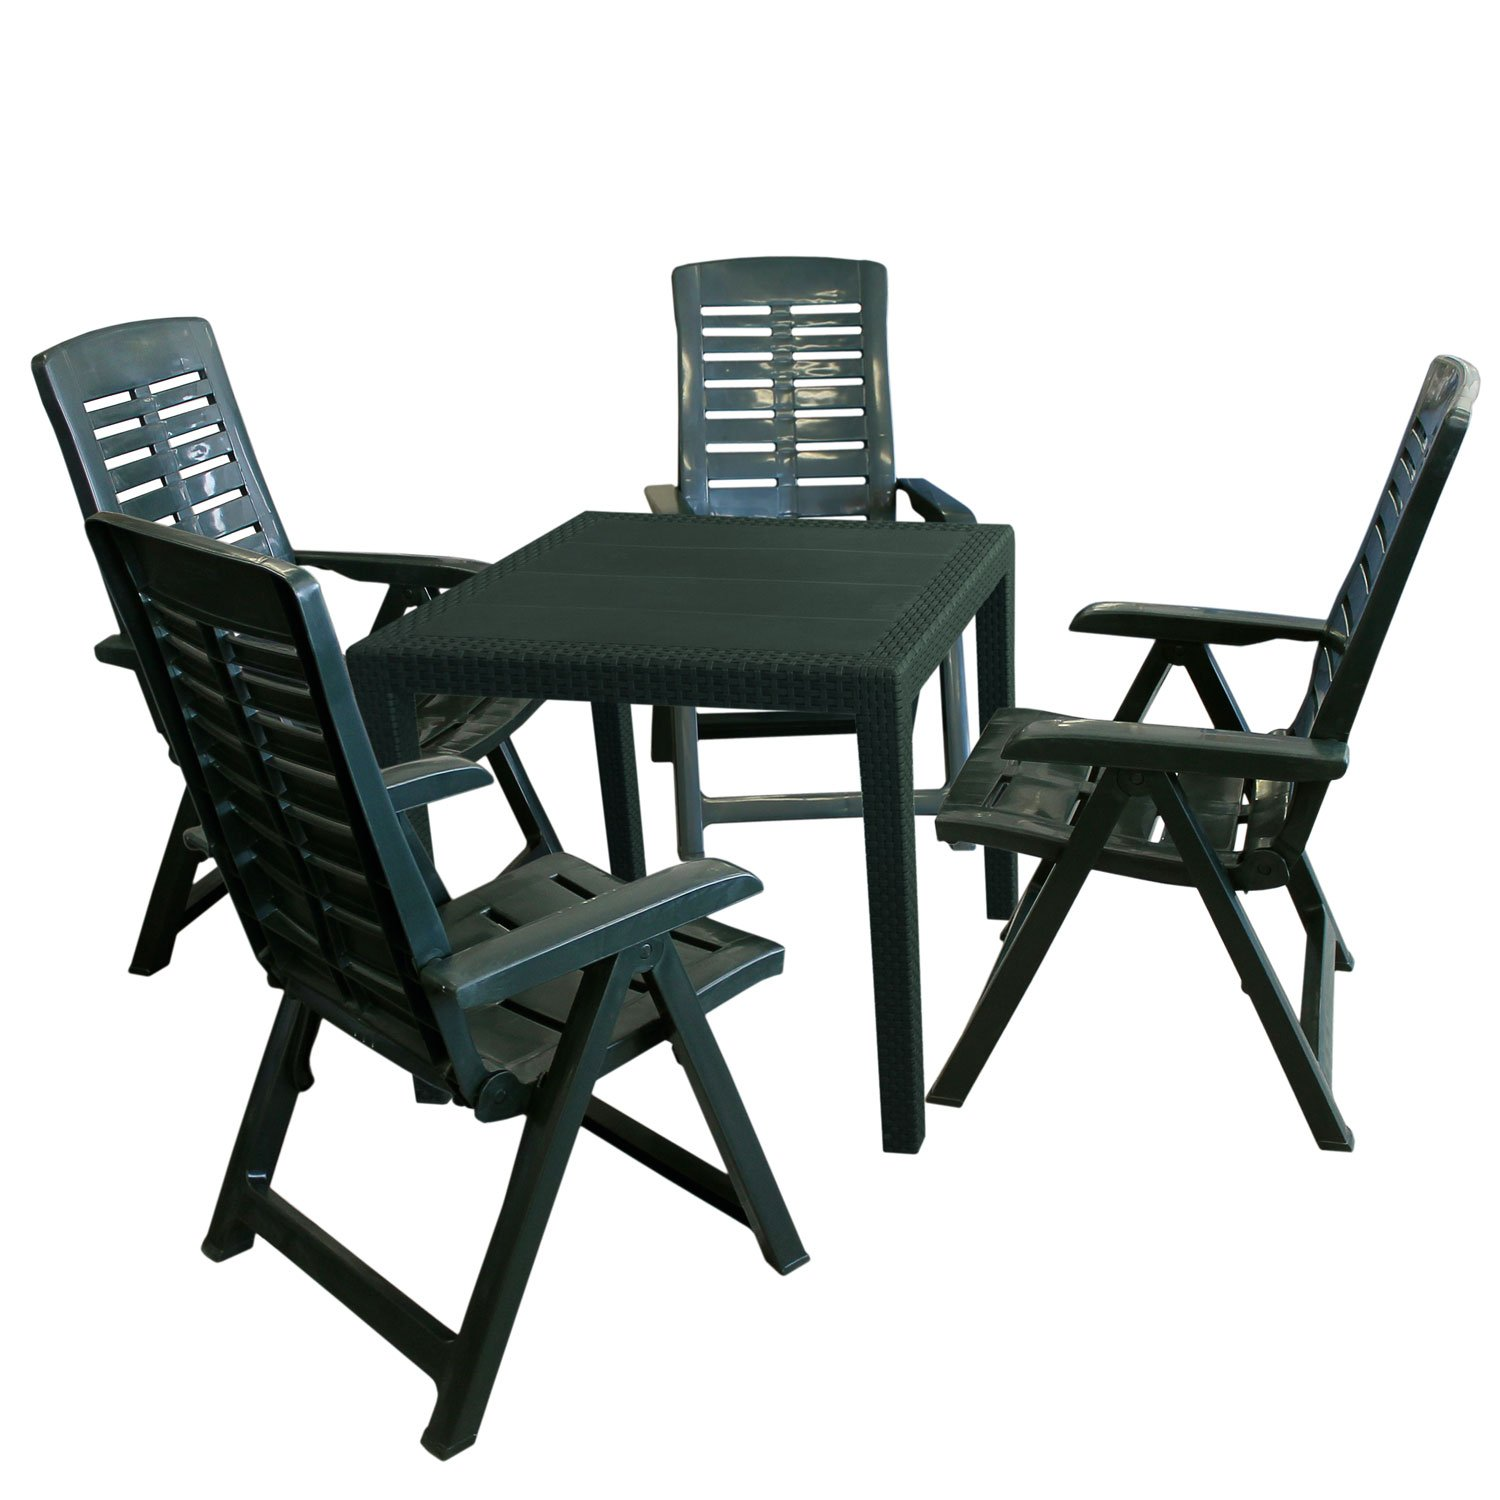 5tlg gartengarnitur gartenm bel set gartentisch 79x79xh72cm 4x gartenstuhl 5 positionen. Black Bedroom Furniture Sets. Home Design Ideas